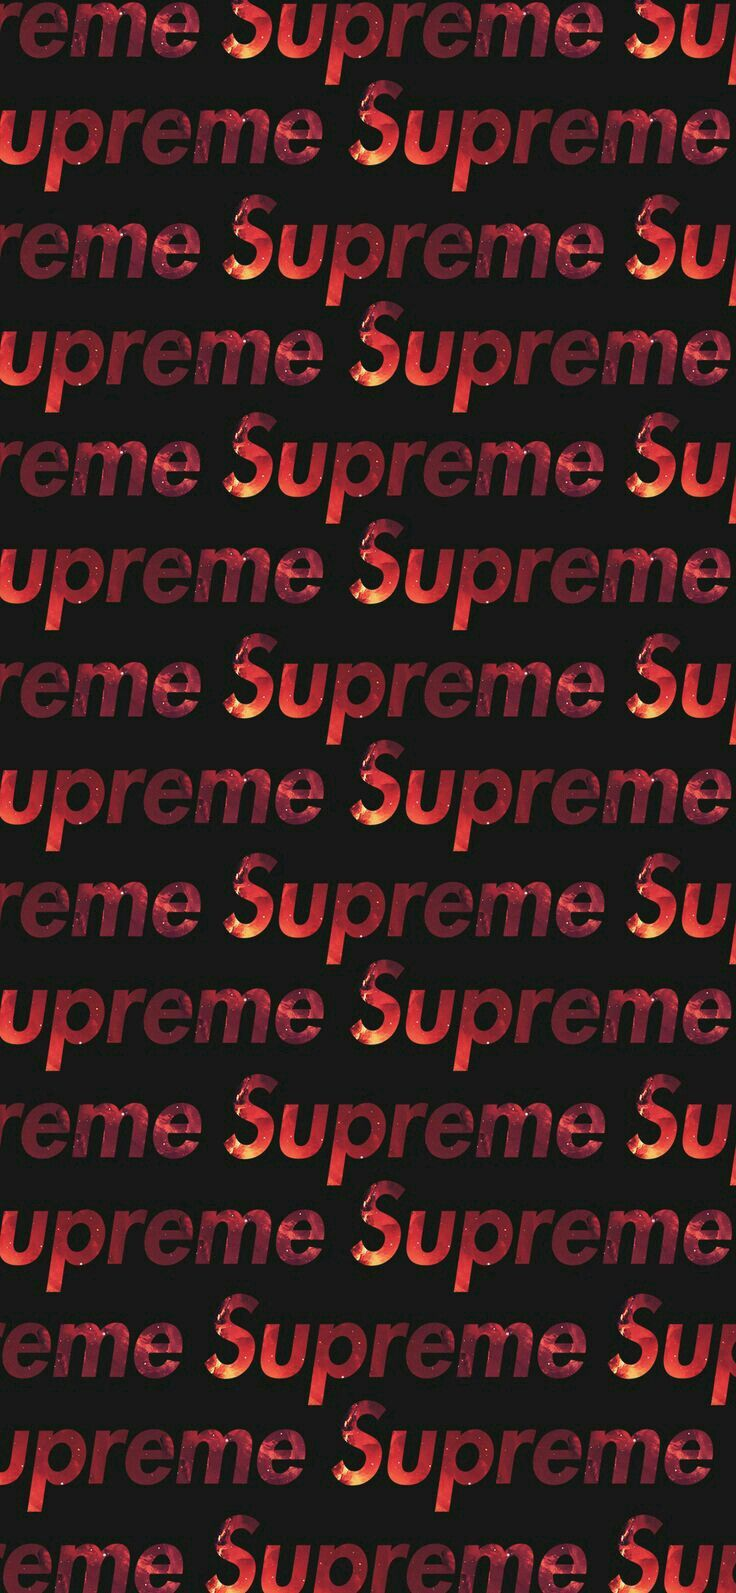 Pin By Amy James On Chanel Coach Gucci Prada Etc Supreme Wallpaper Supreme Iphone Wallpaper Hype Wallpaper